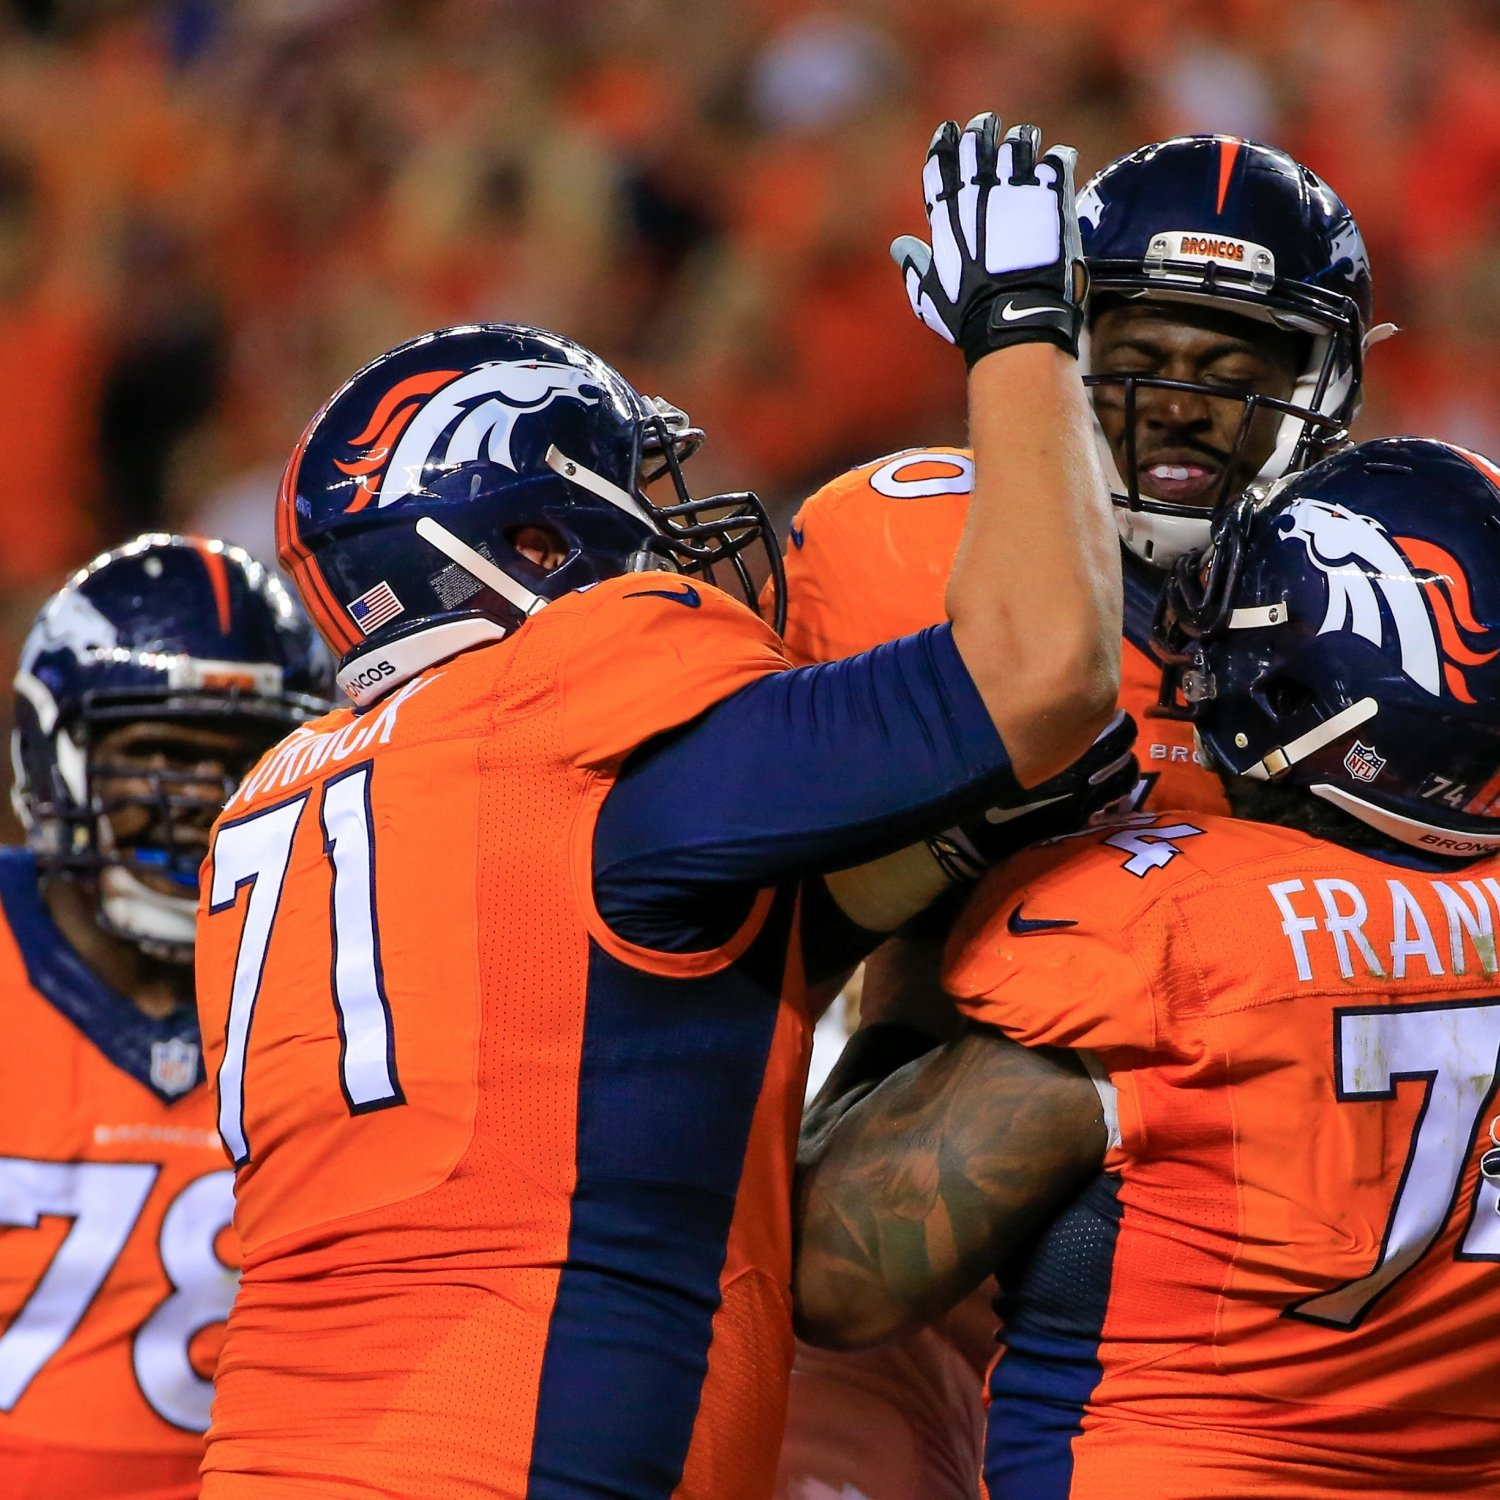 San Diego Chargers At Denver Broncos: San Diego Chargers Vs. Denver Broncos: Complete Report